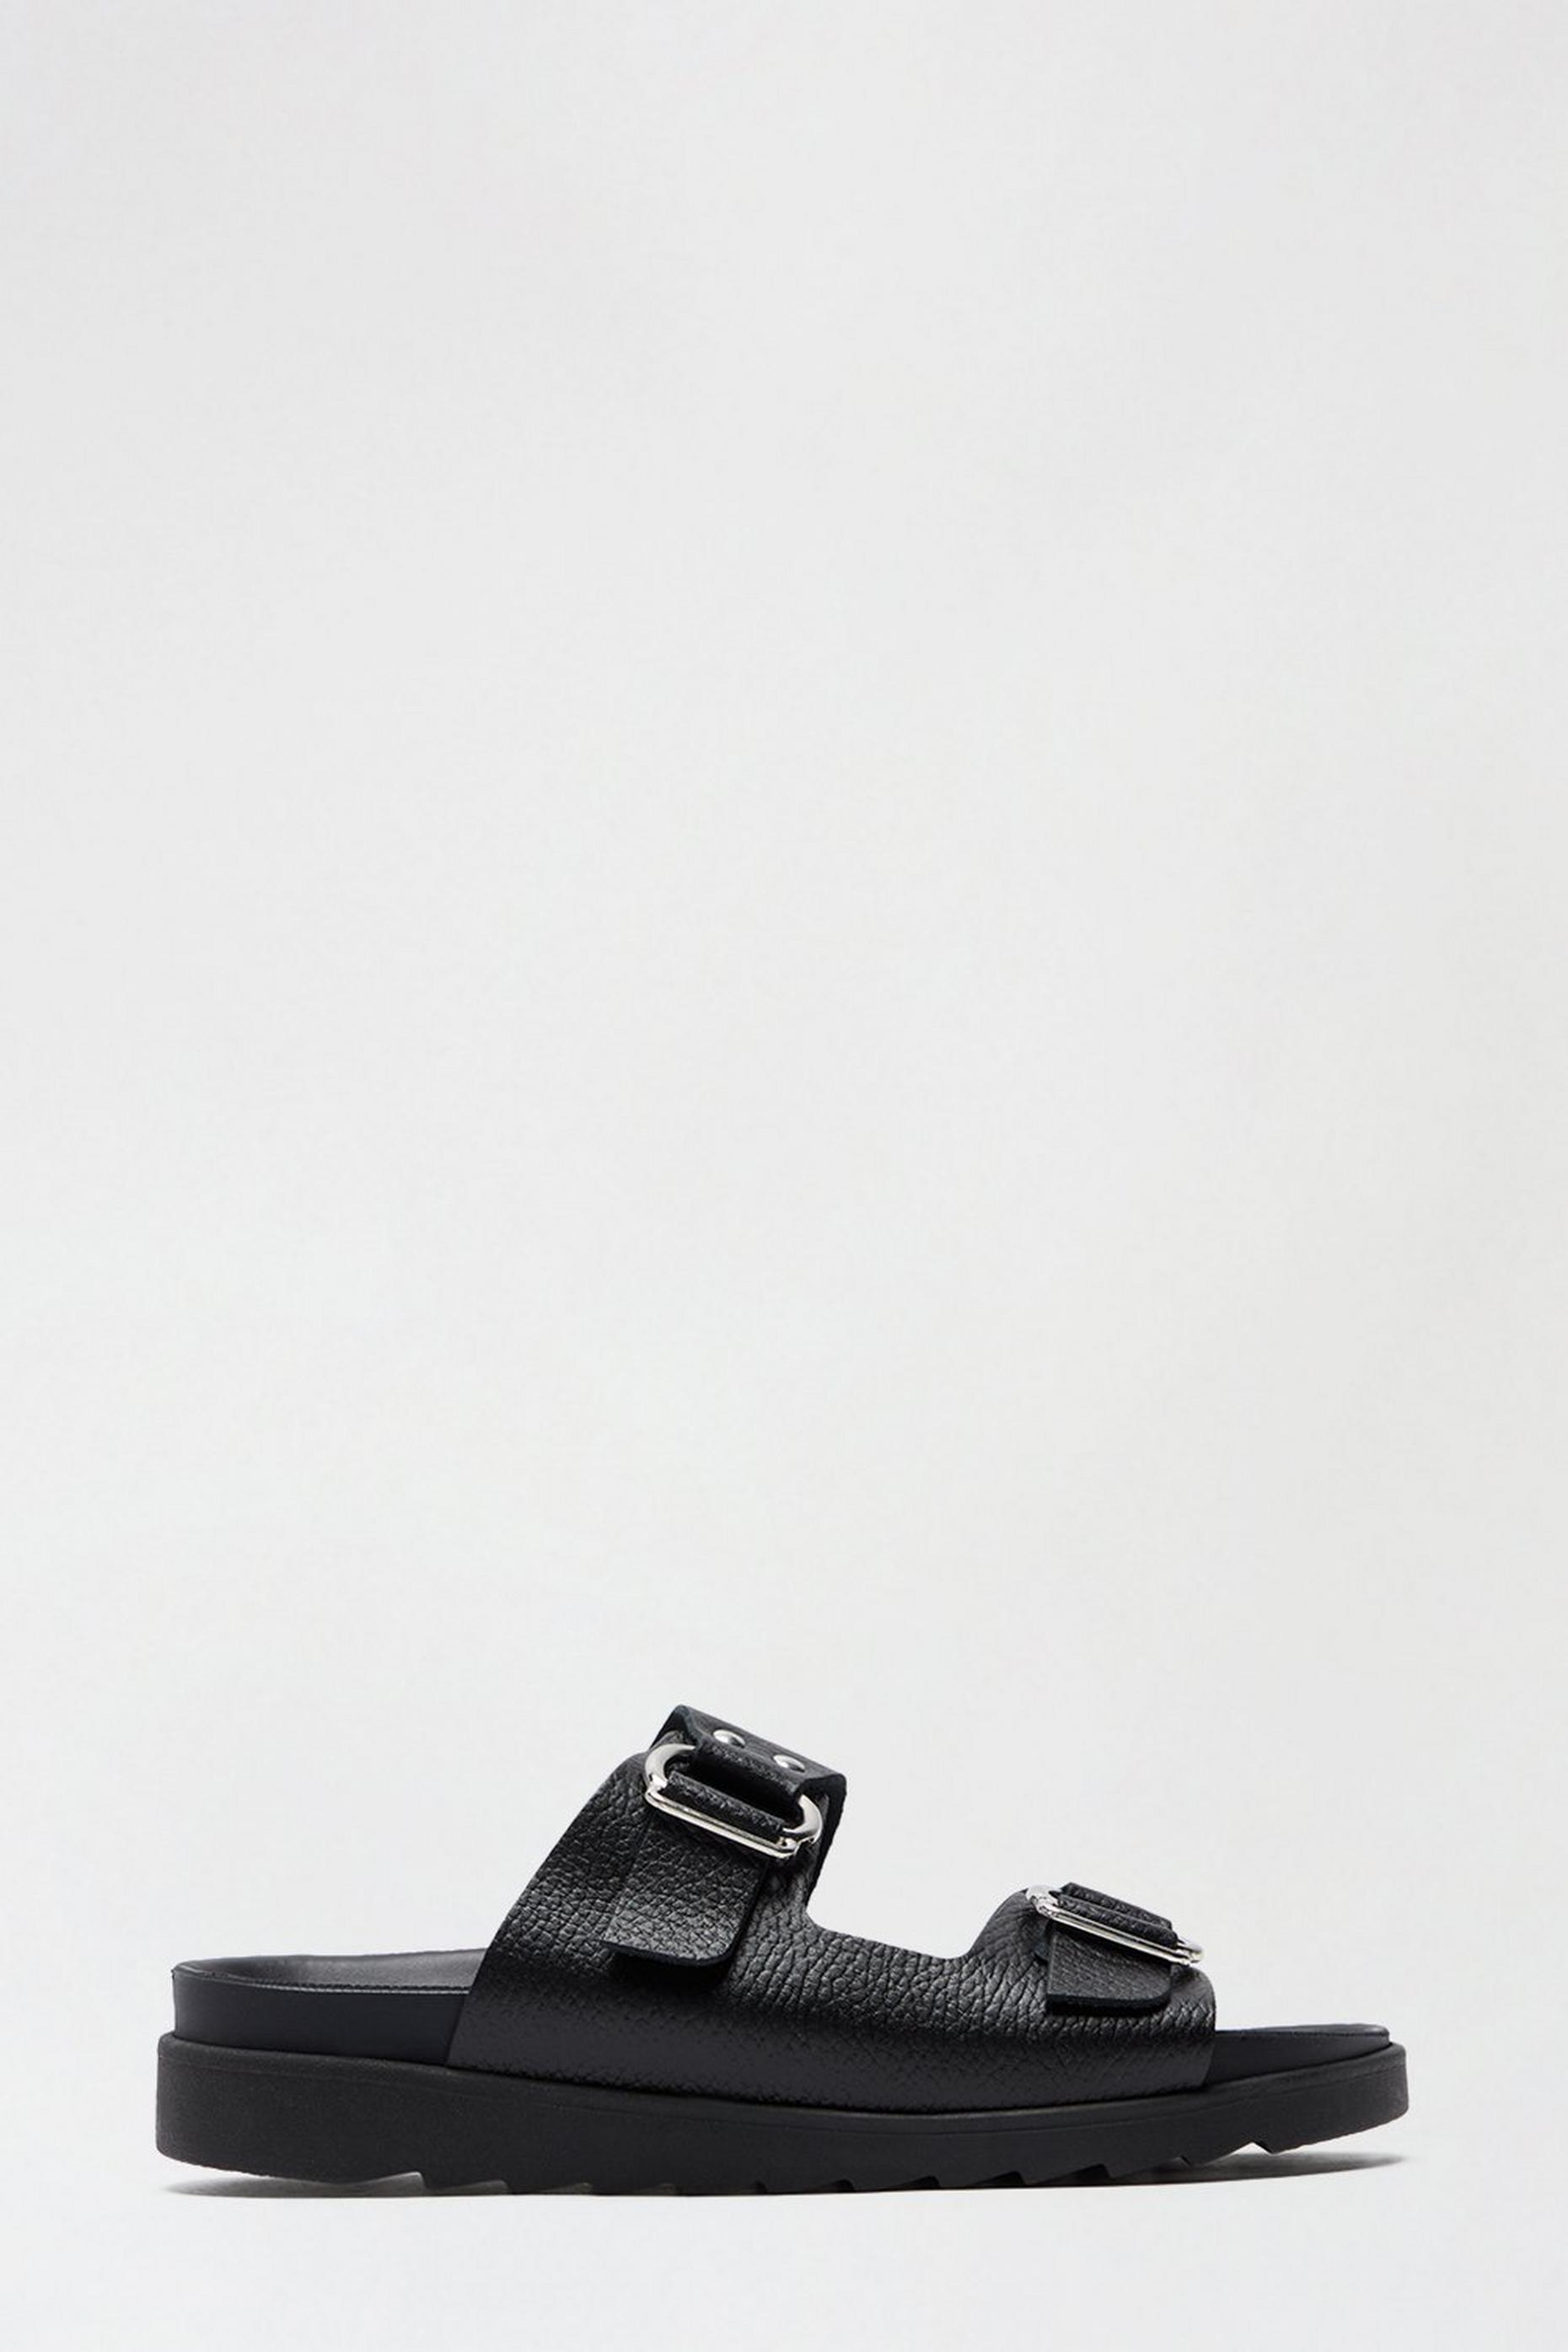 Black Leather Jaxx Double Buckle Slide